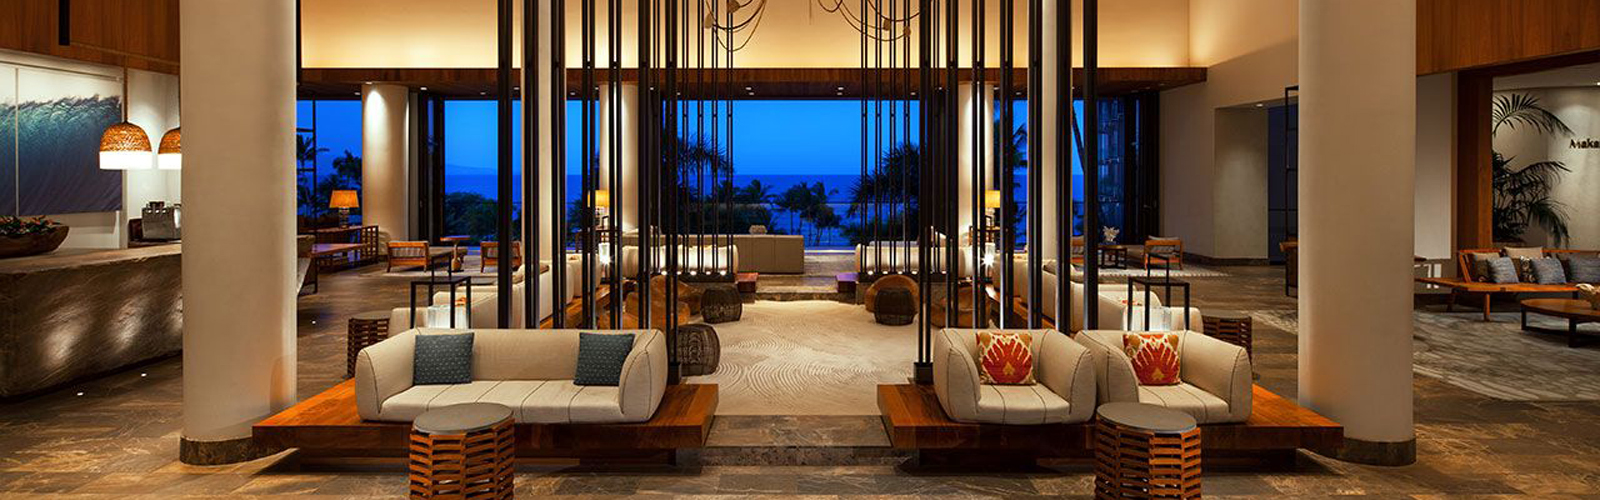 Andaz lobby overlooking the ocean